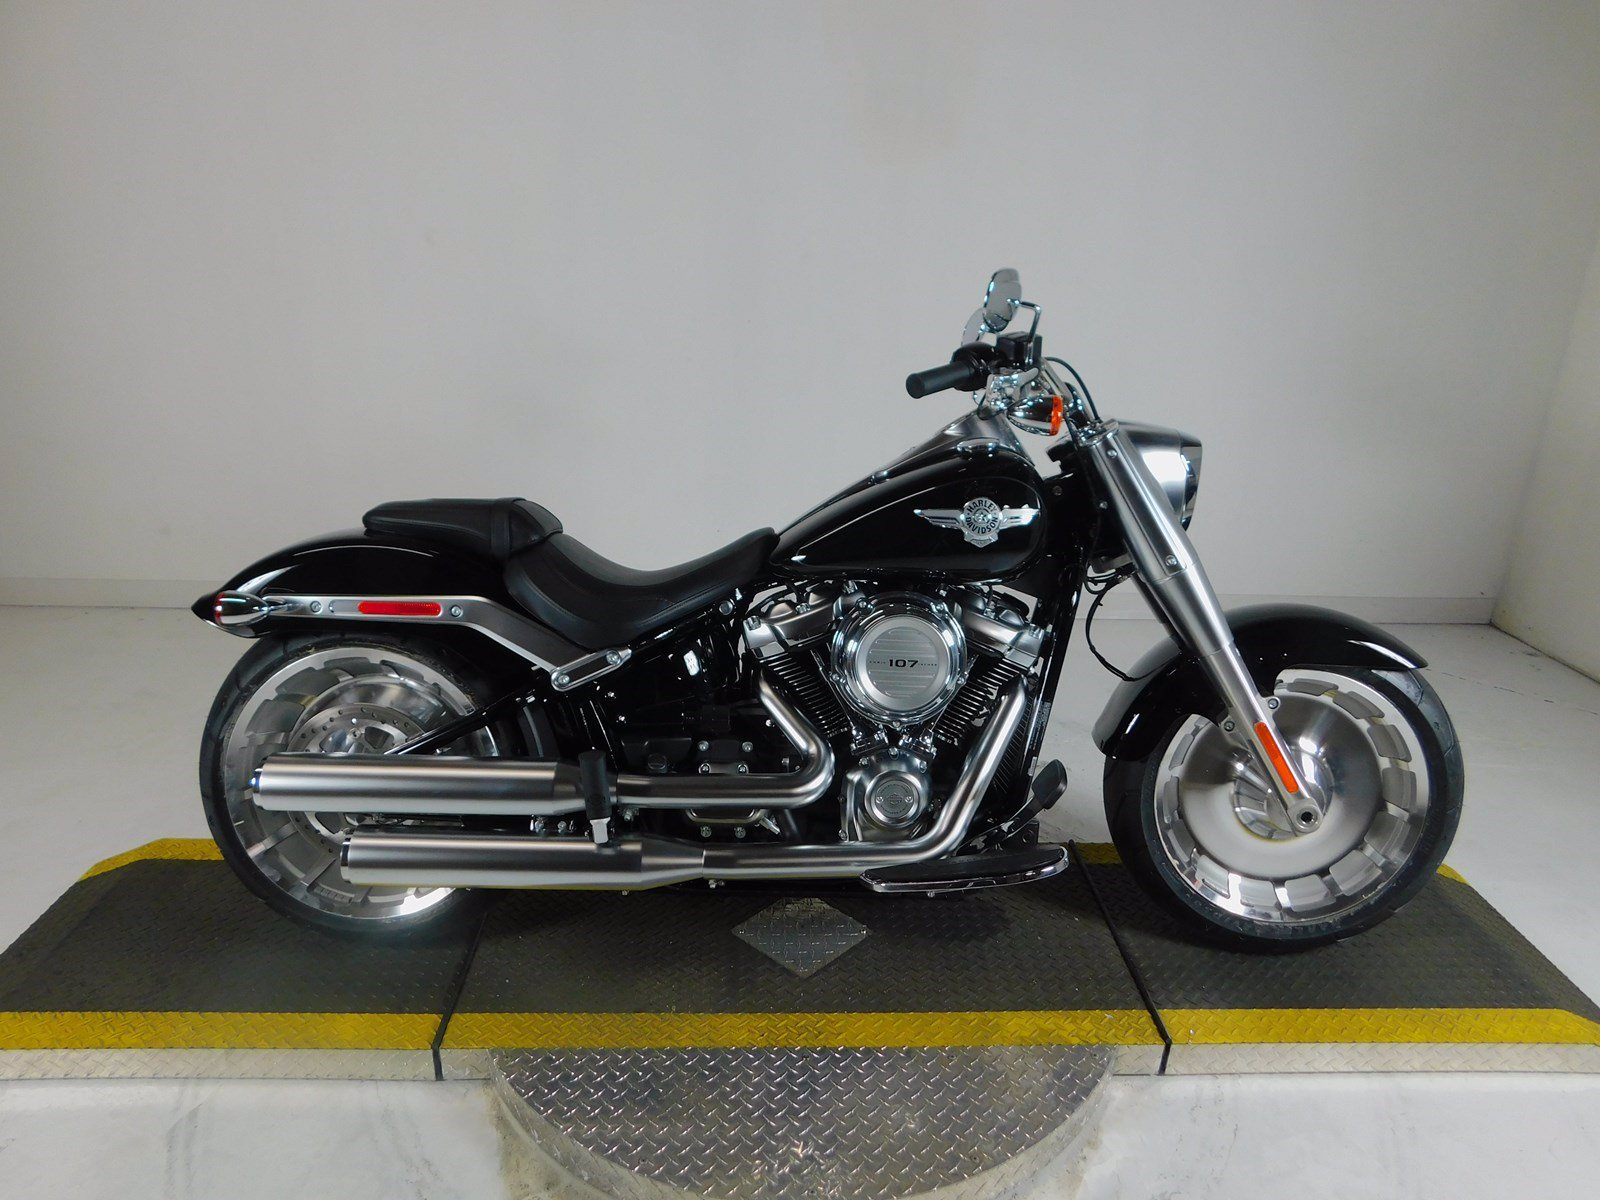 New 2019 Harley-Davidson Softail Fat Boy FLFB Softail in ...